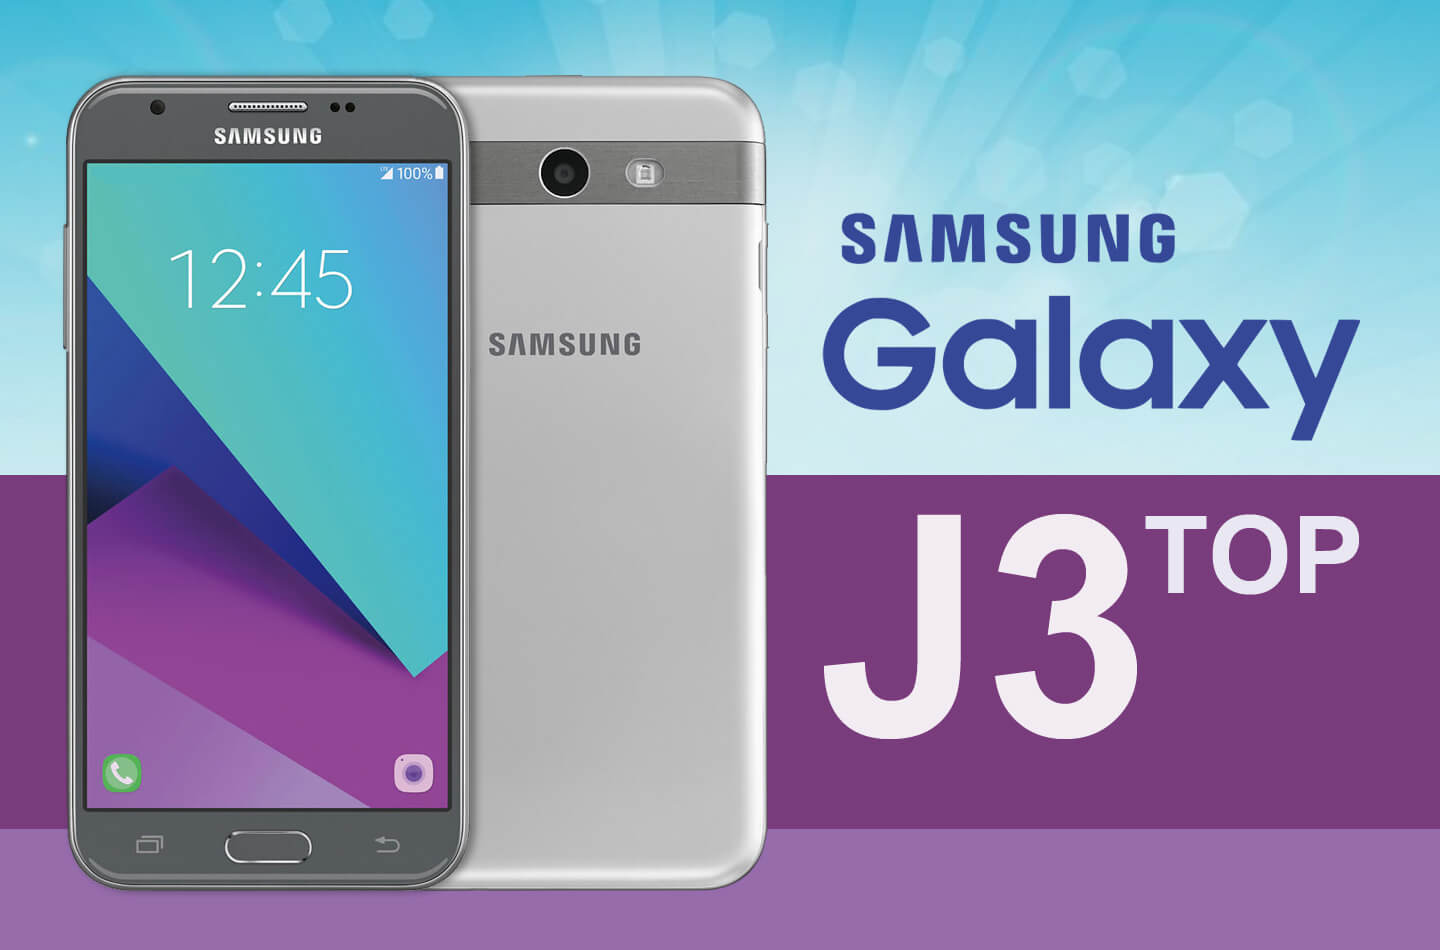 The company is known for its innovation — which, depending on your preferences, may even sur. Samsung Galaxy J3 Top receives Bluetooth and WiFi ...